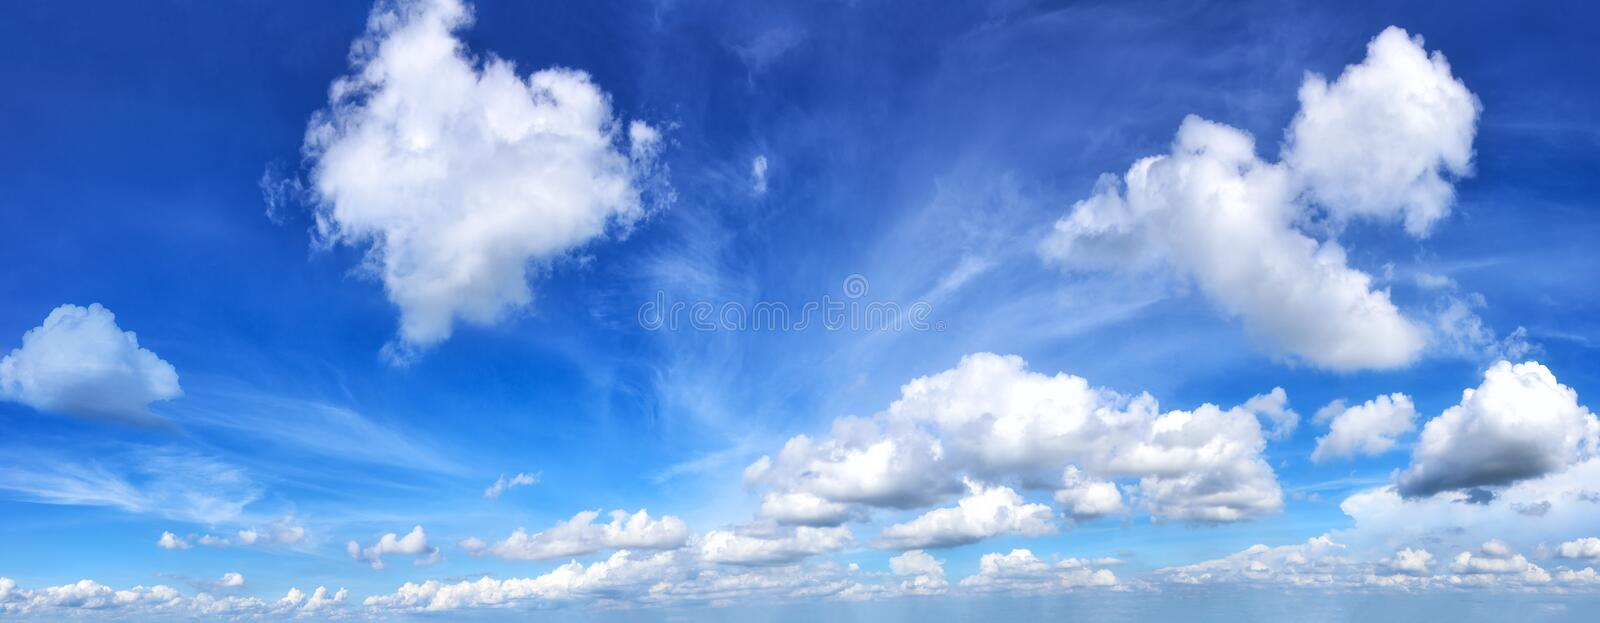 Blue sky and cloud. royalty free stock images